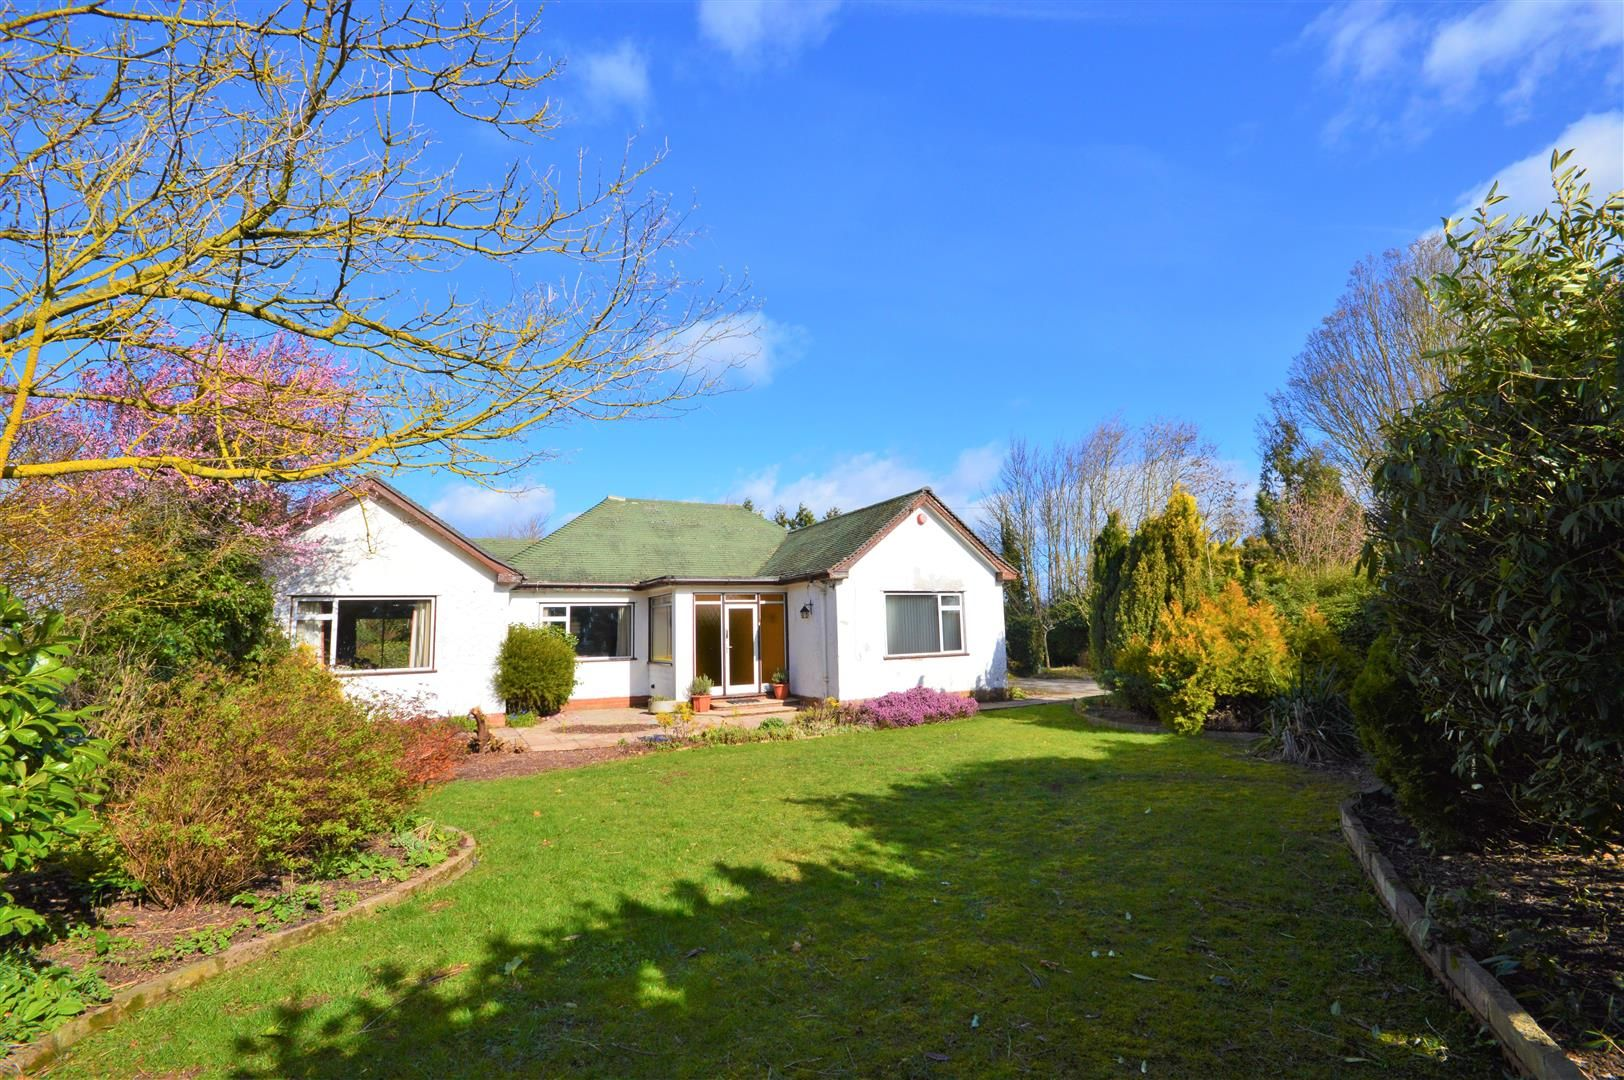 3 bed detached-bungalow for sale in Burghill, HR4